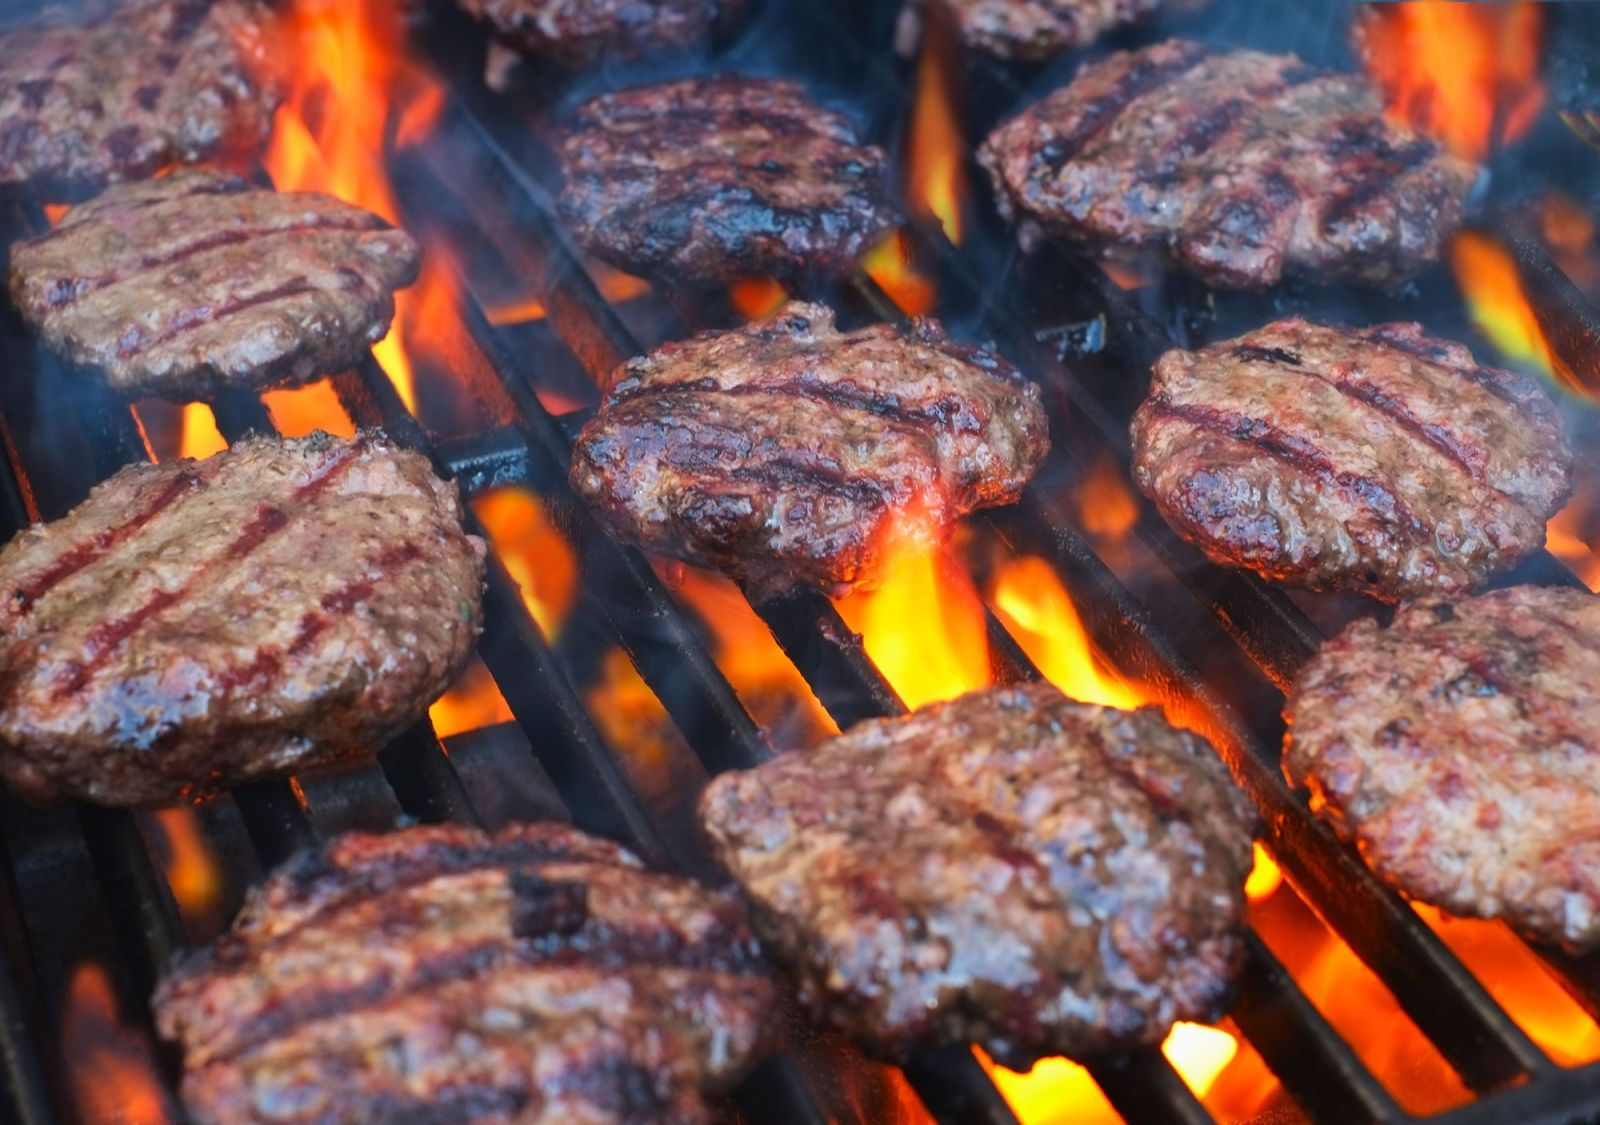 6 Commandments For Making the Perfect Burger